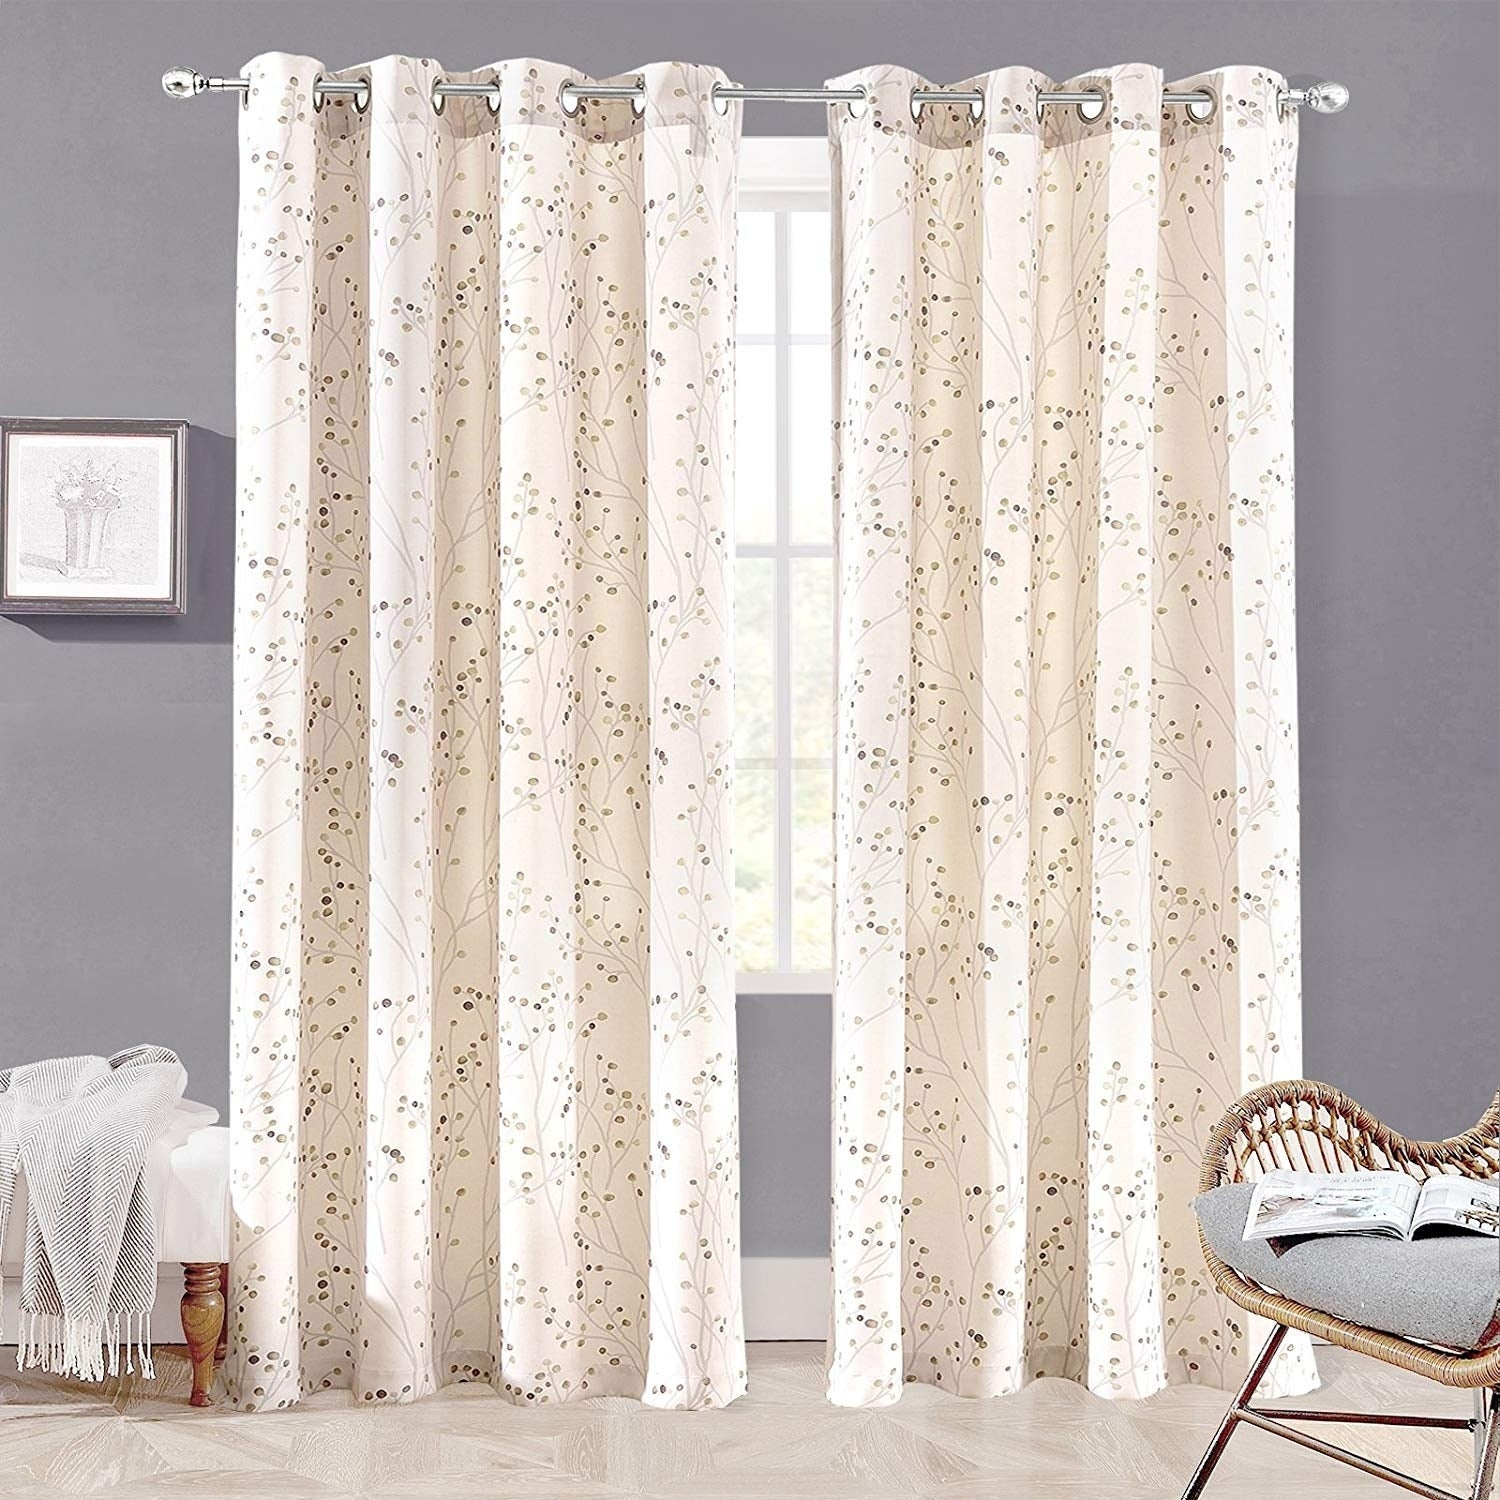 "Driftaway Harper Ink Floral Pattern Room Darkening Window Curtain Panel  Pair - 50""widthx84""length with Floral Pattern Room Darkening Window Curtain Panel Pairs (Image 6 of 20)"